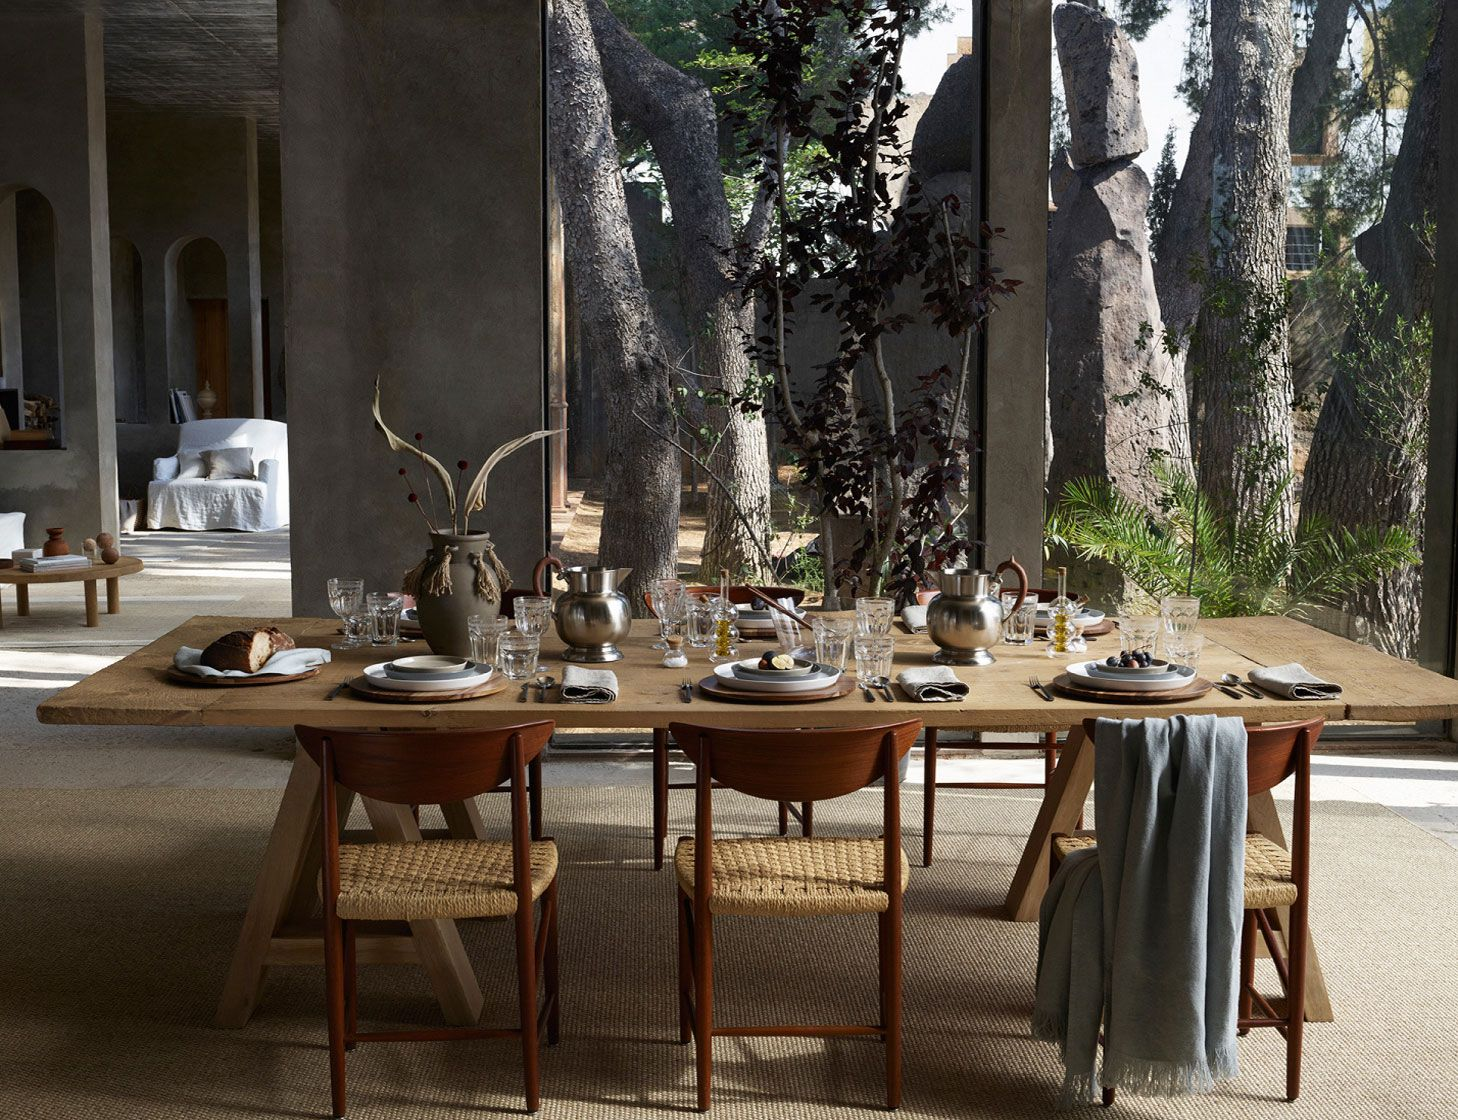 Linen campaign aw16 editorials zara home portugal the house of my dreams pinterest - Zara home portugal ...